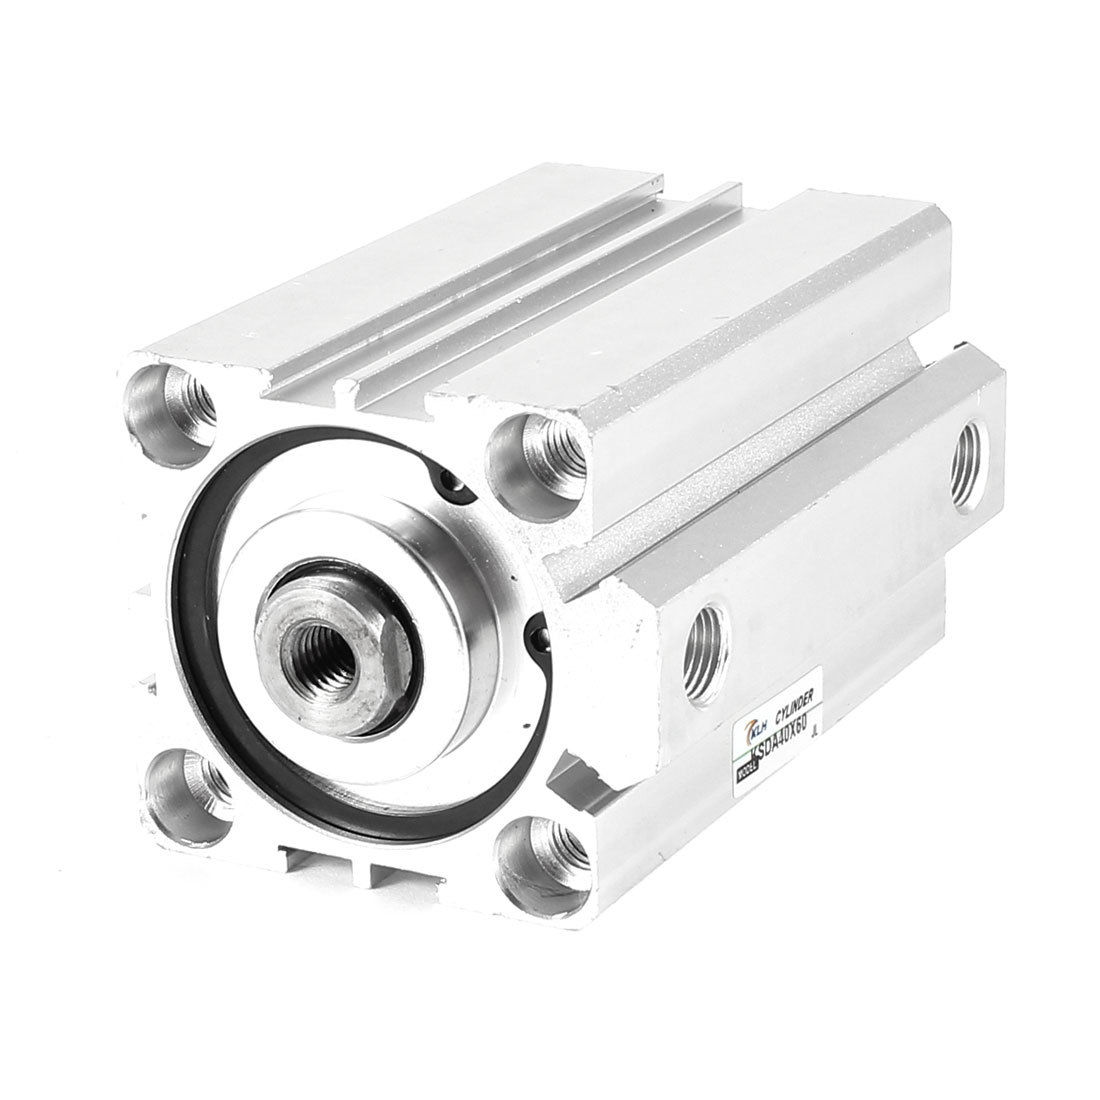 1 Pcs 63mm Bore 50mm Stroke Stainless steel Pneumatic Air Cylinder SDA63-50 1 pcs 50mm bore 25mm stroke stainless steel pneumatic air cylinder sda50 25